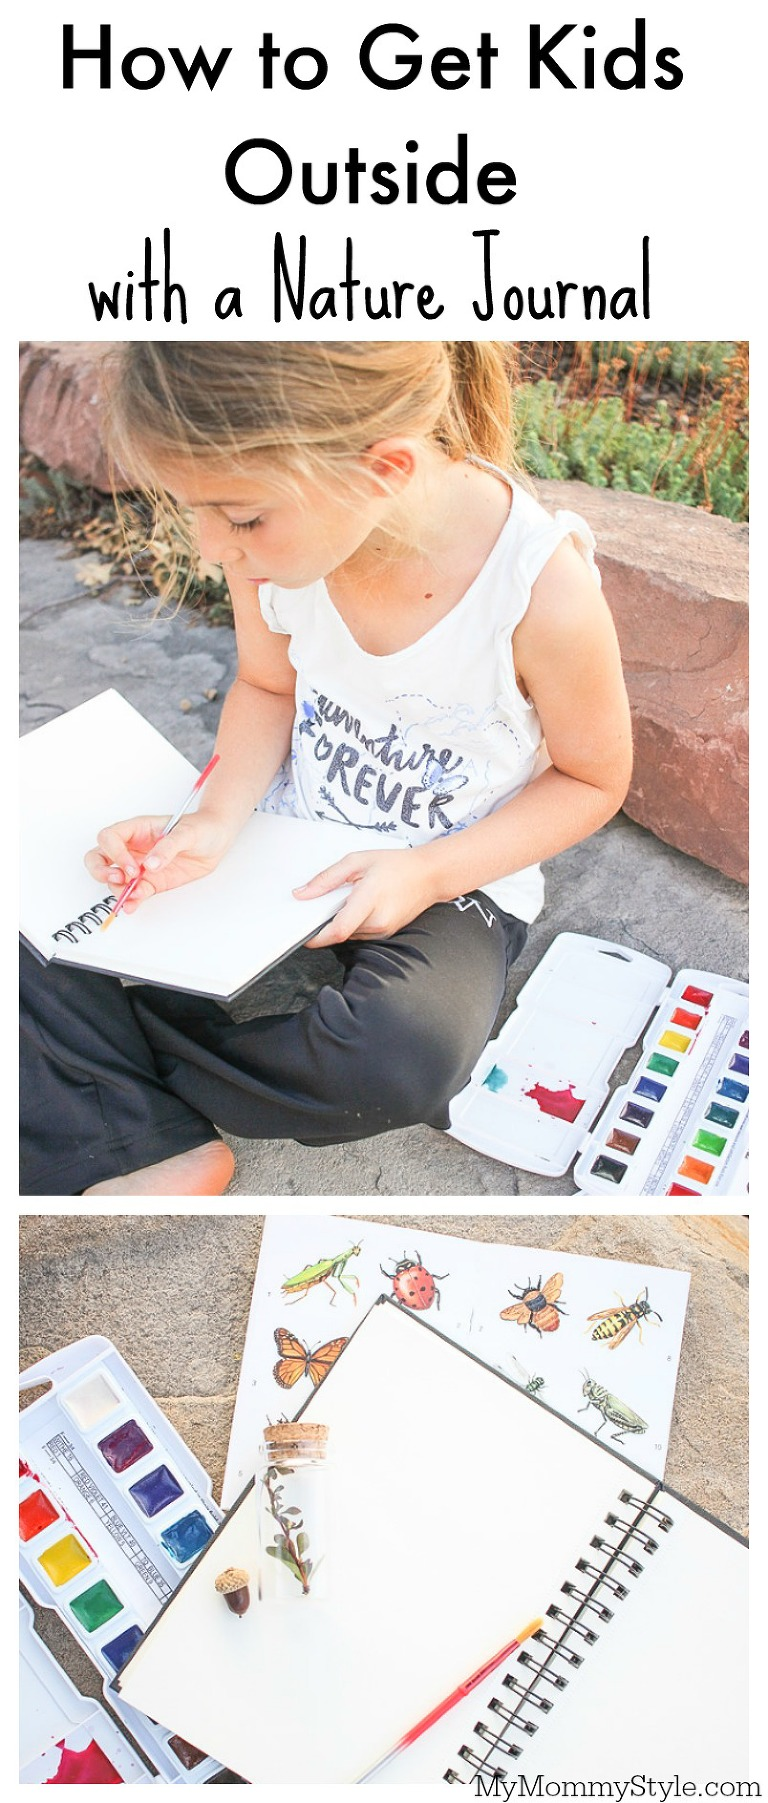 how-to-get-kids-outside-with-a-nature-journal-nature-outdoors